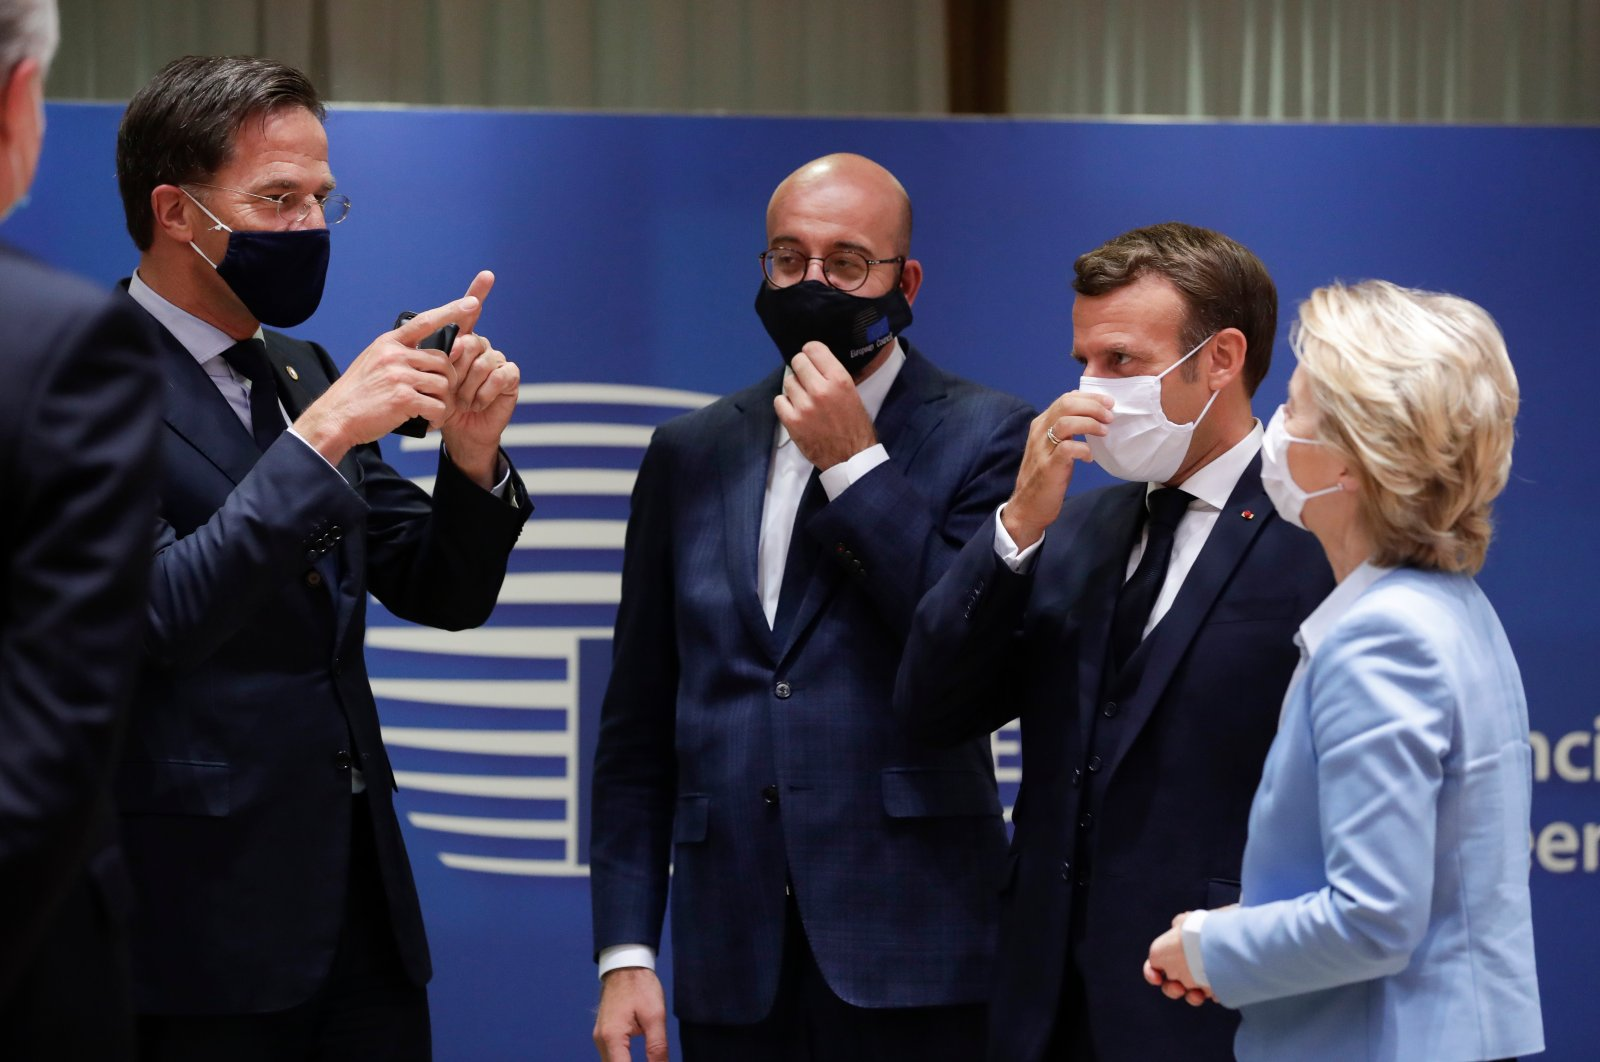 Dutch Prime Minister Mark Rutte (L), European Council President Charles Michel (2nd from L), French President Emmanuel Macron (2nd from R) and European Commission President Ursula von der Leyen (R) attend a round table meeting at an EU summit in Brussels, Belgium, July 21, 2020. (AP Photo)